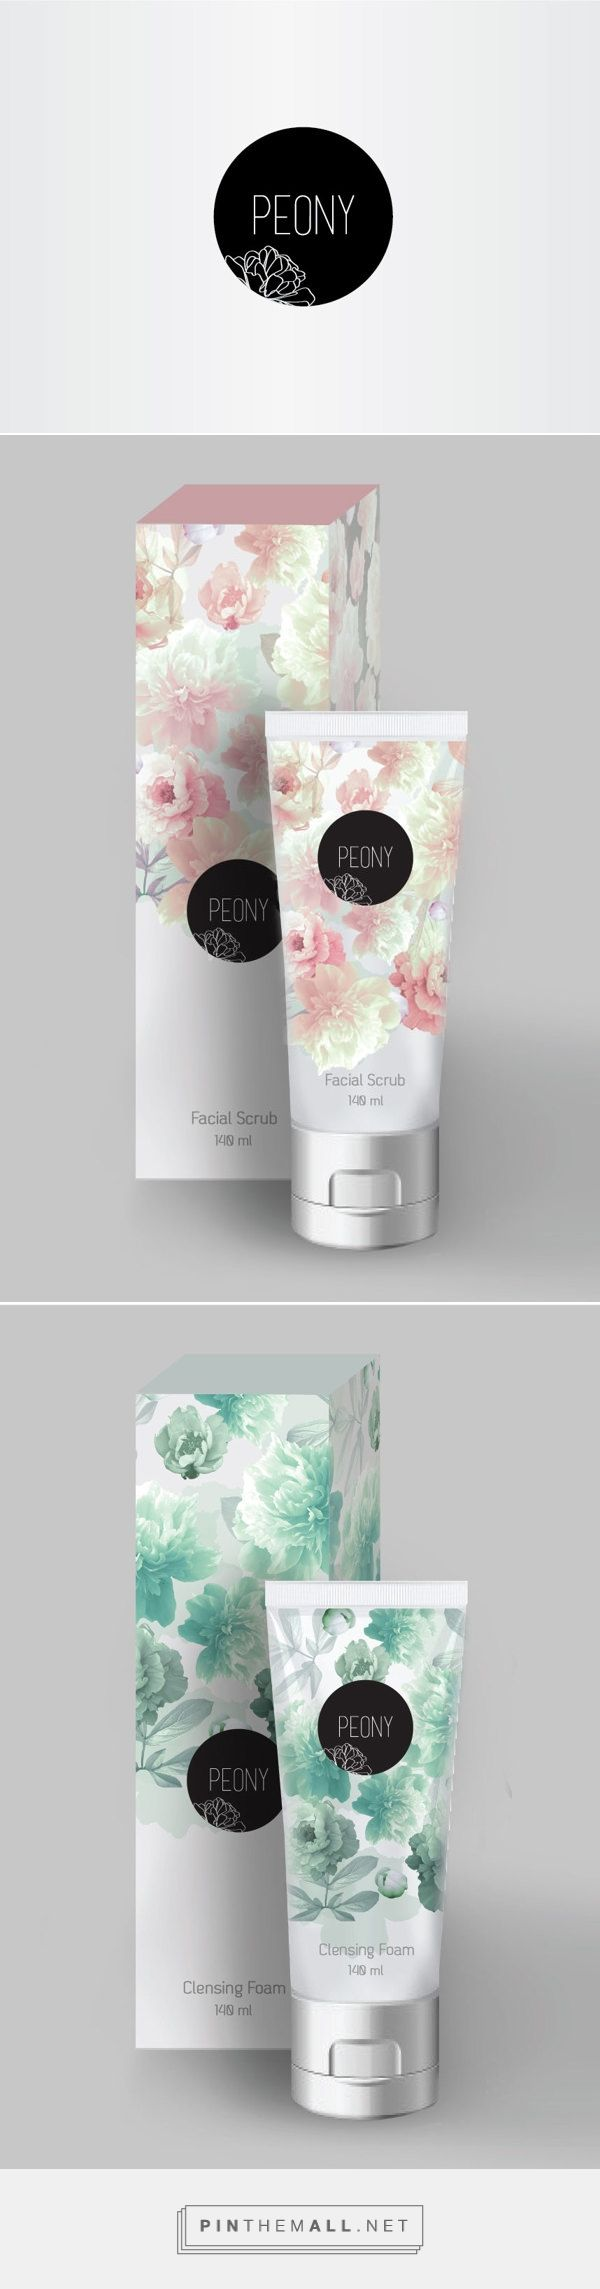 Peony Cosmetics / new cosmetic brand in Indonesia